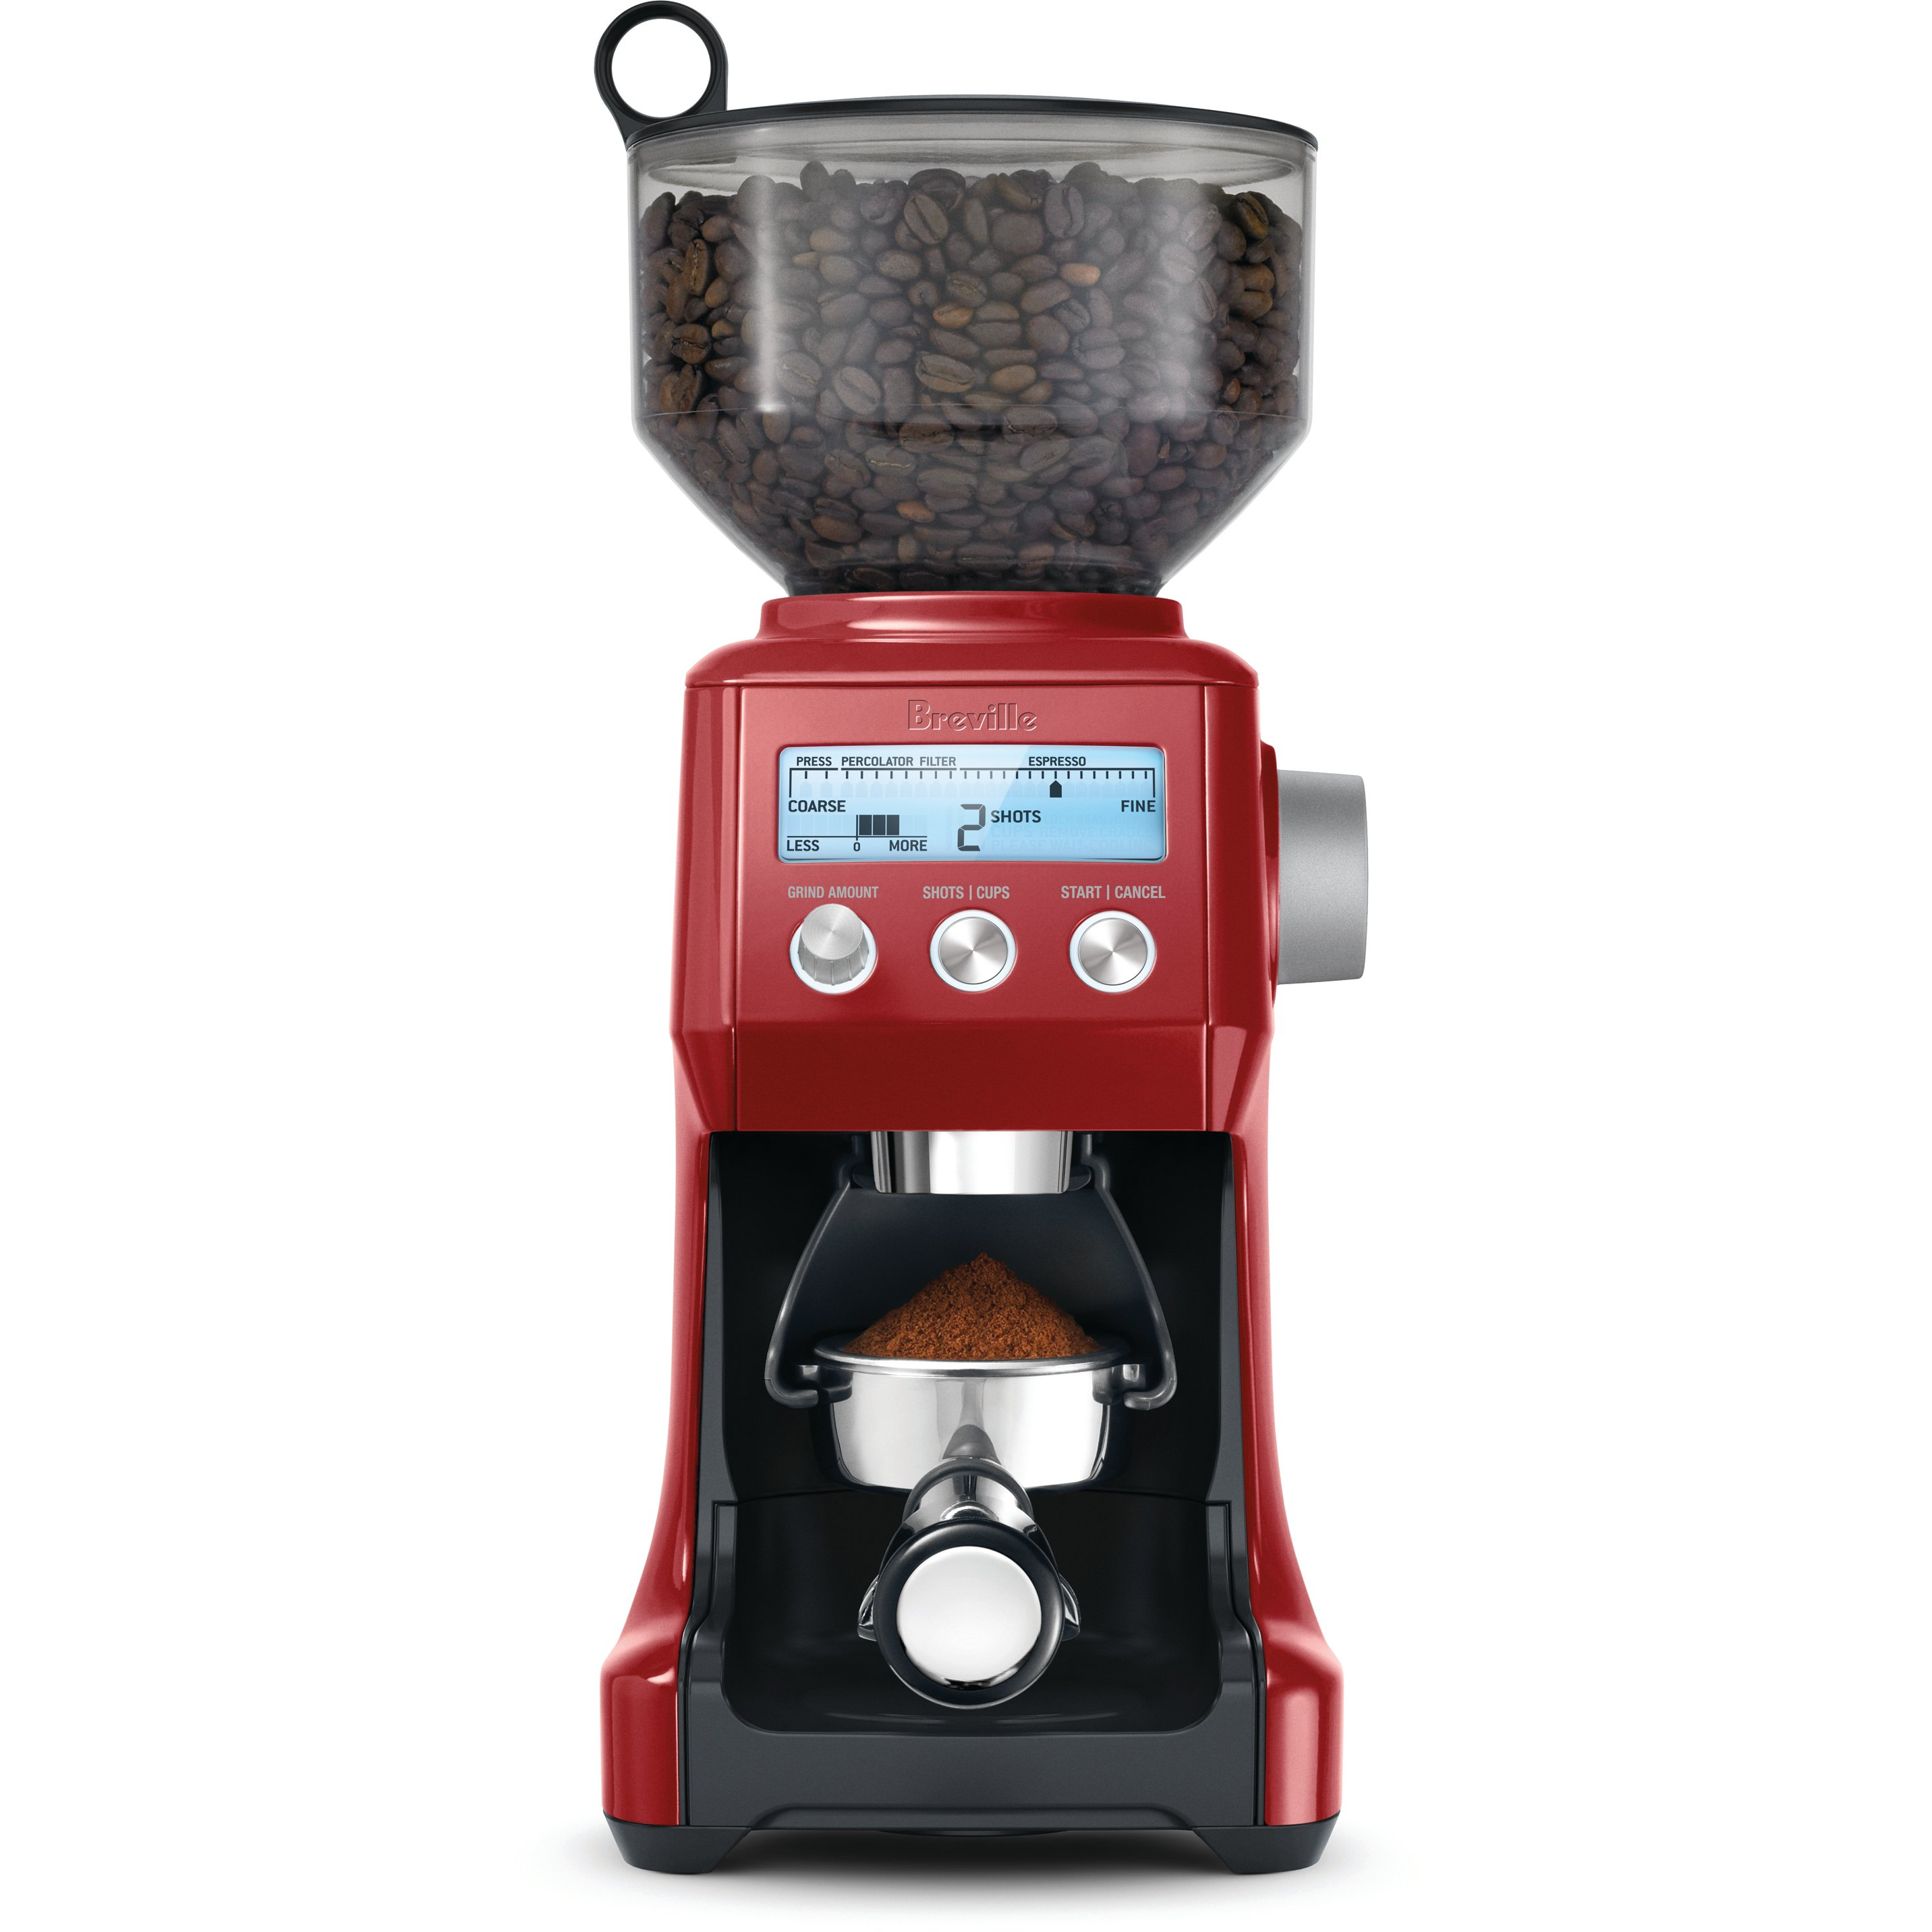 Breville BCG800CBXL Smart Grinder Cranberry Red Die-Cast Metal Conical Burr Coffee Grinder